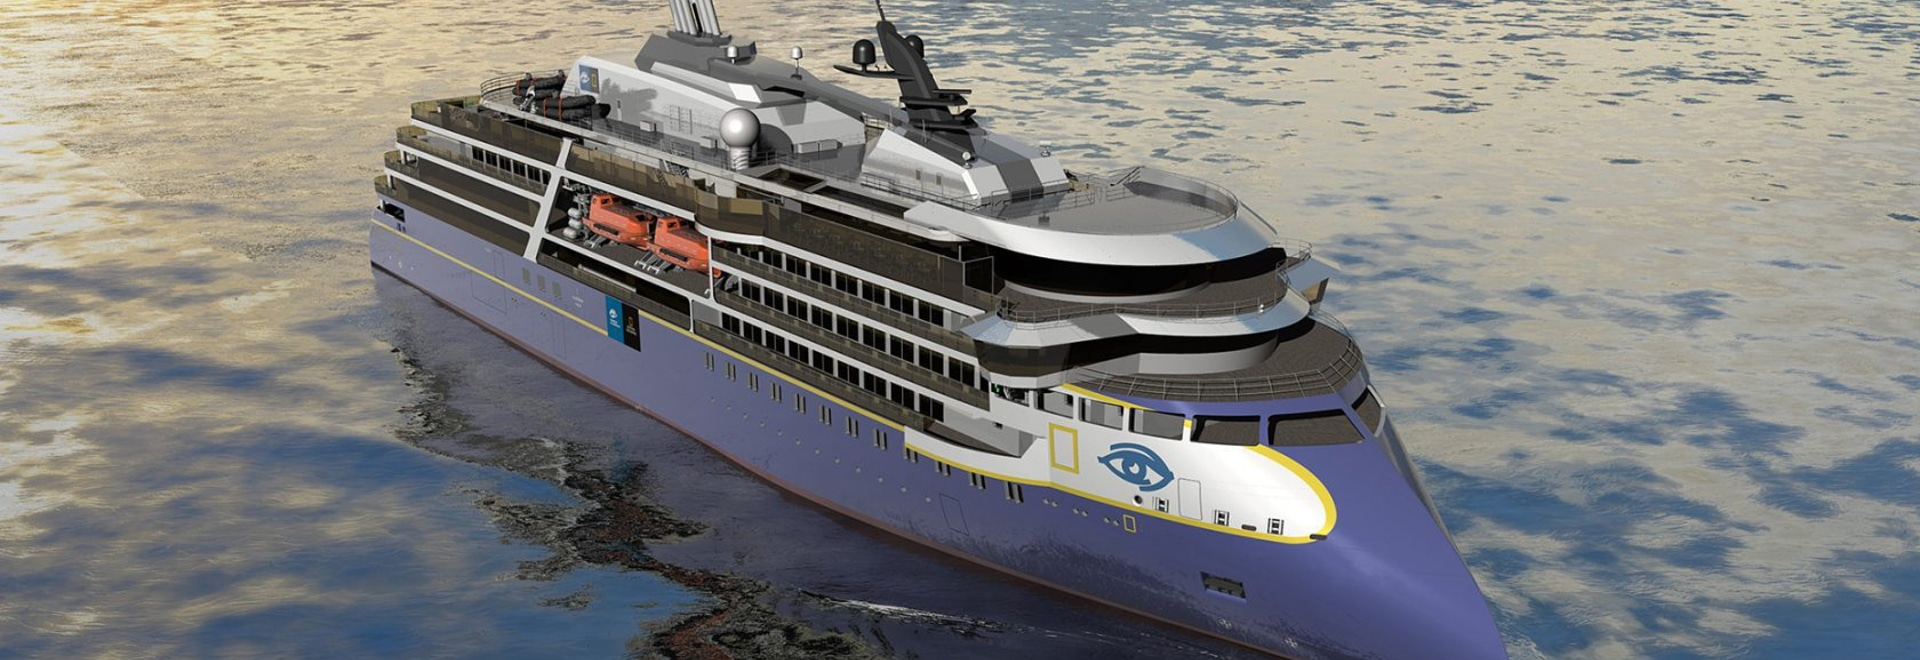 New vessel will follow National Geographic Endurance (above), which is scheduled for delivery from Ulstein's Ulsteinvik, Norway, shipyard in 2020